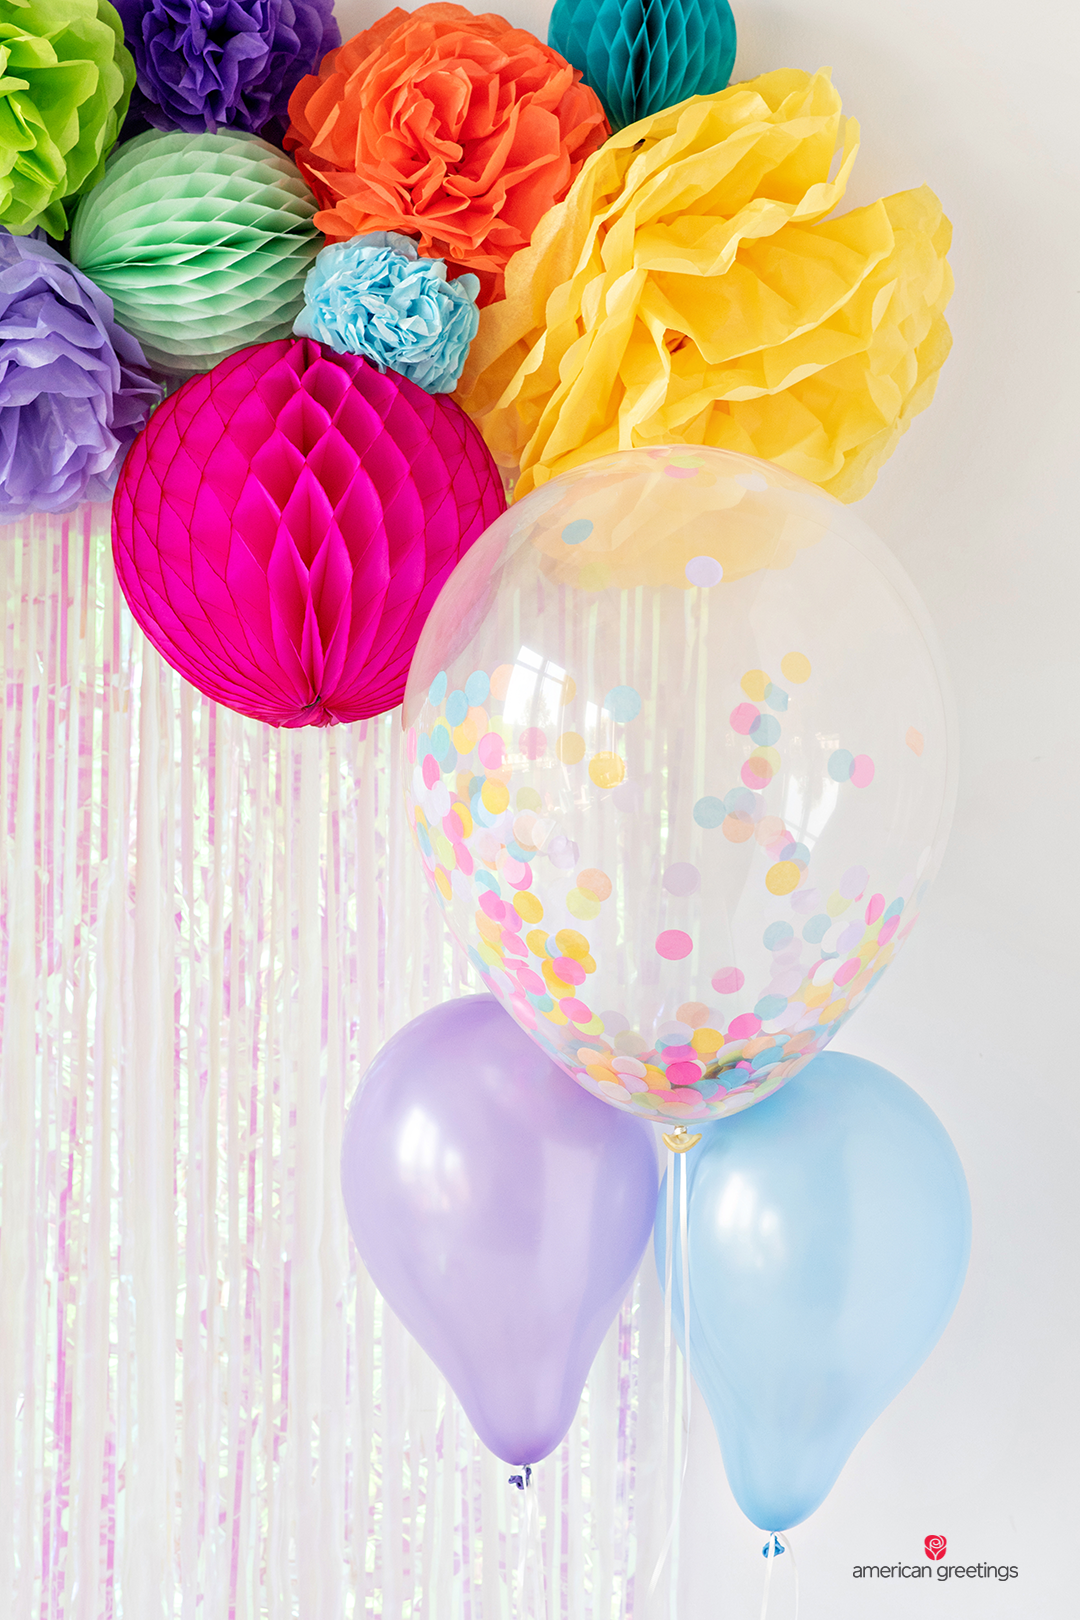 Confetti-balloons and tissue pappeer pom-poms and honeycombs in a variety of colors.